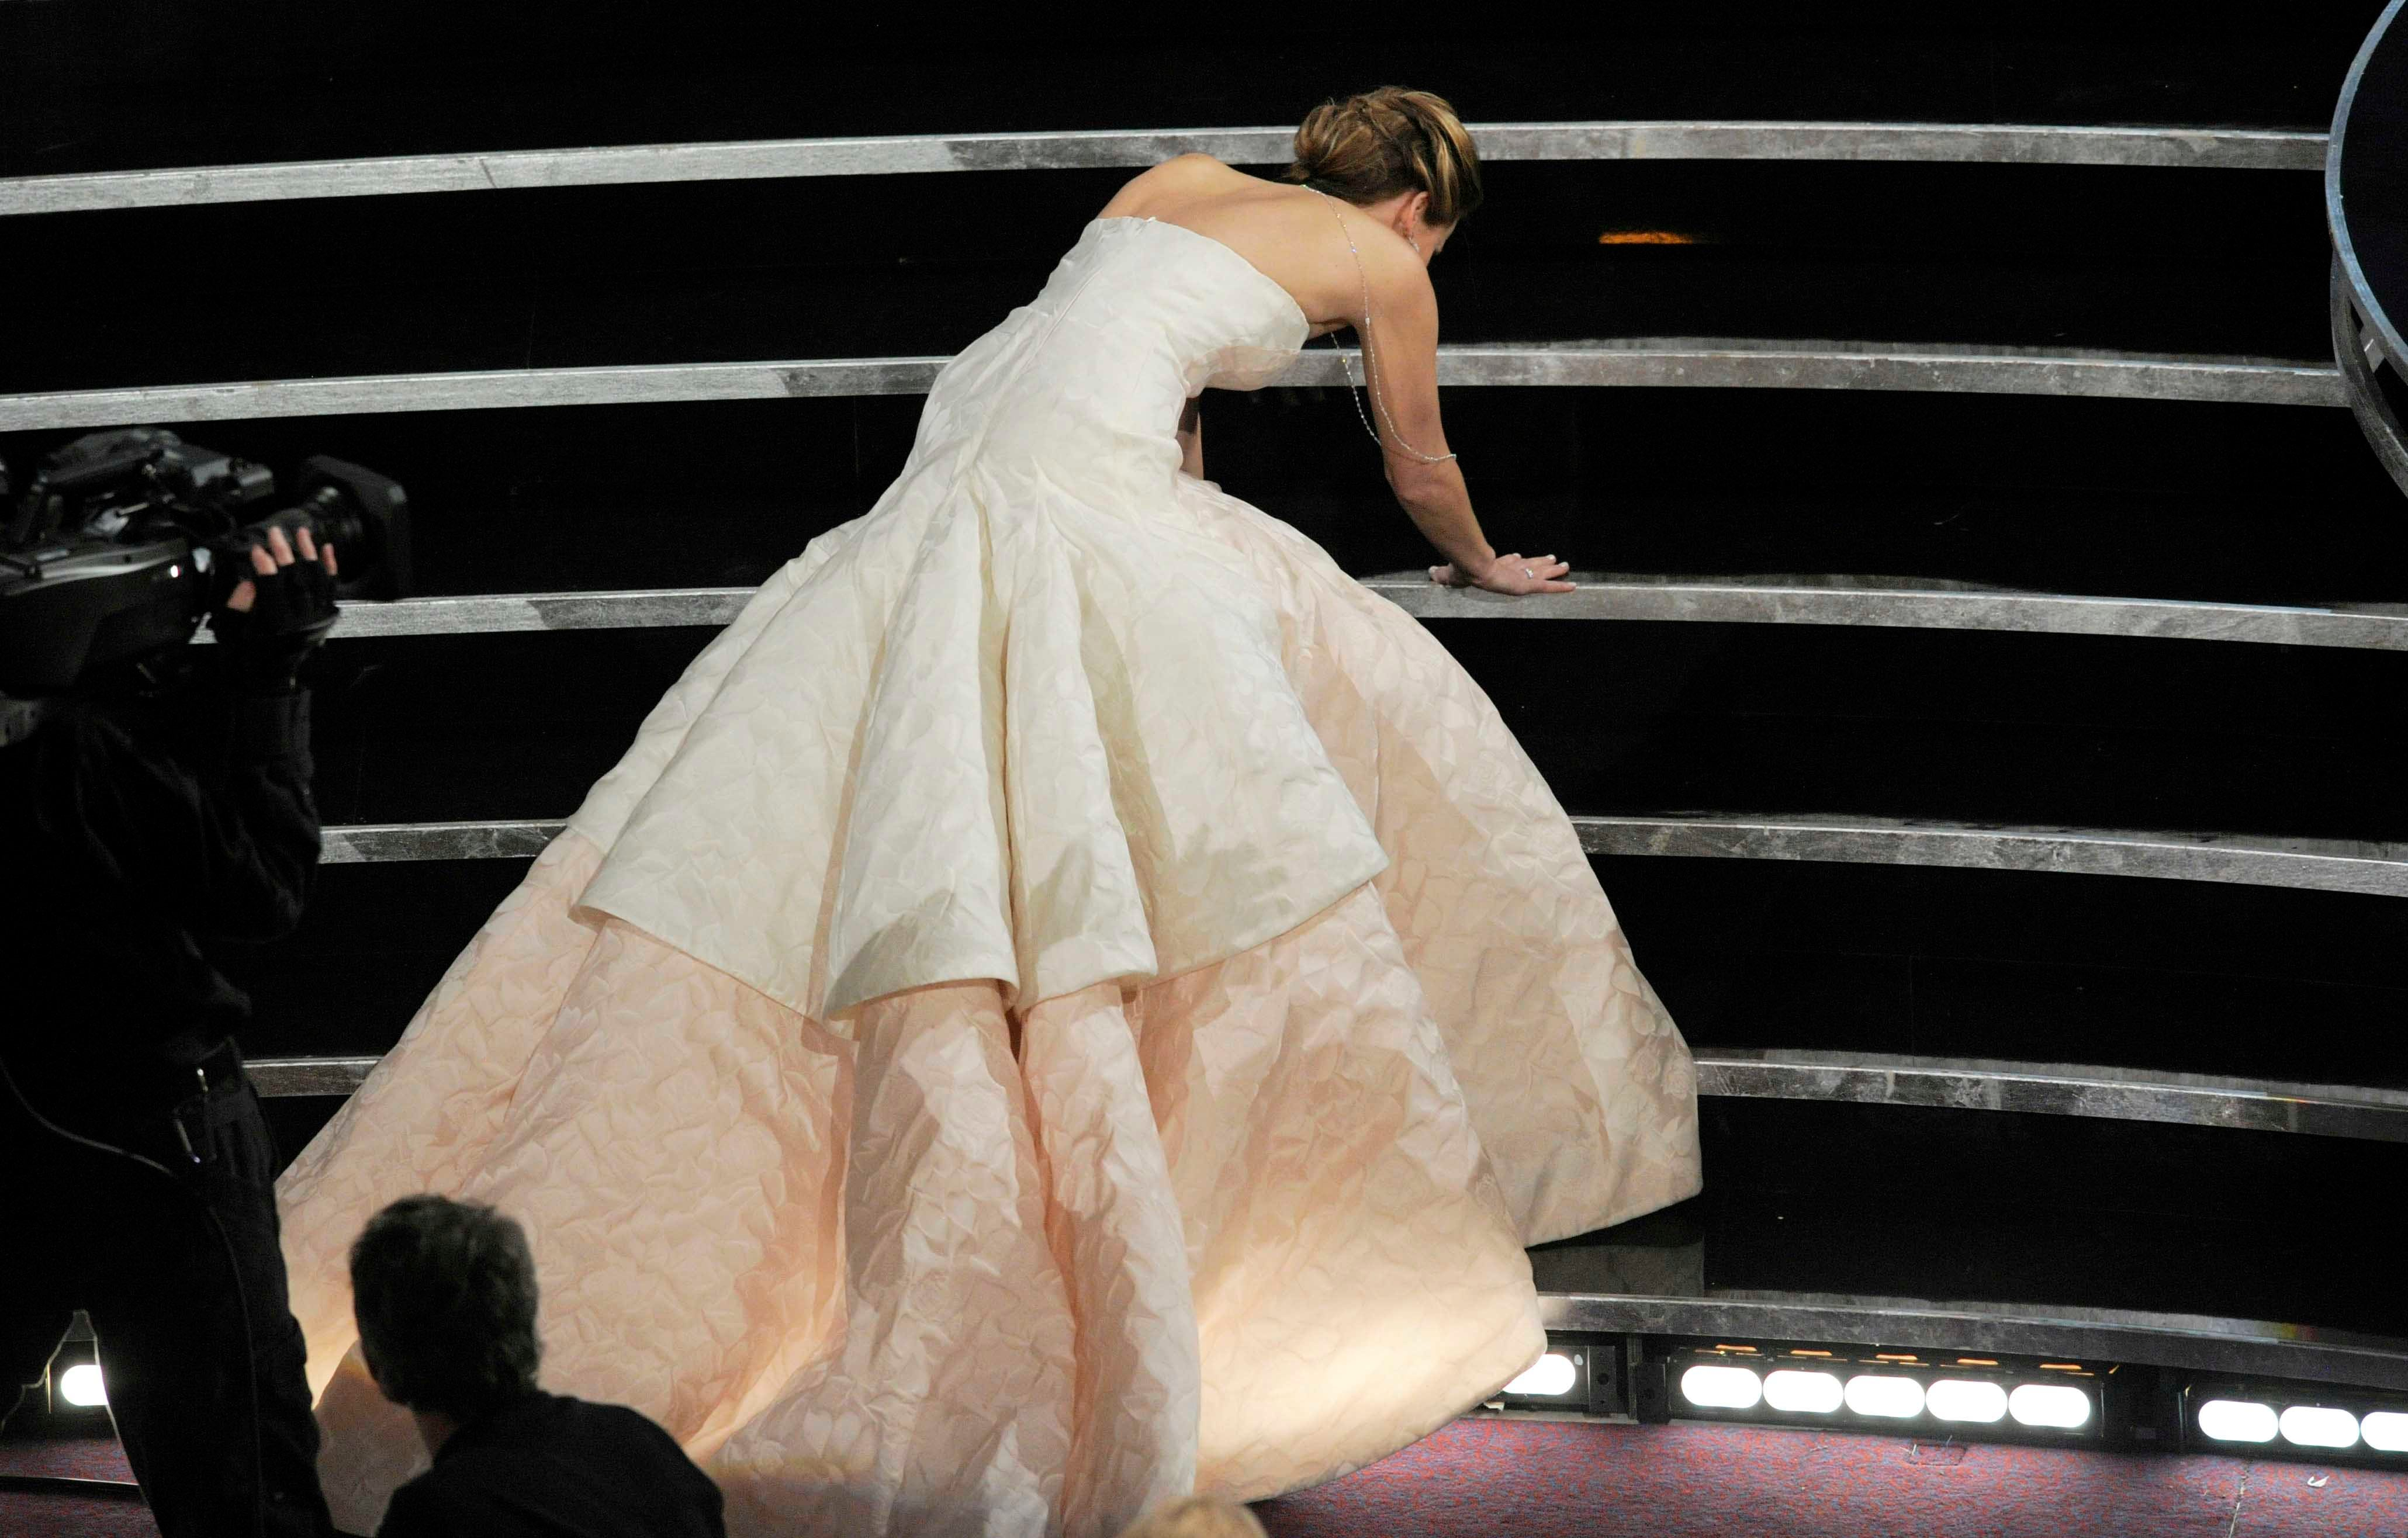 Oscars pro tip: Practice wearing heels onstage to avoid wipeout